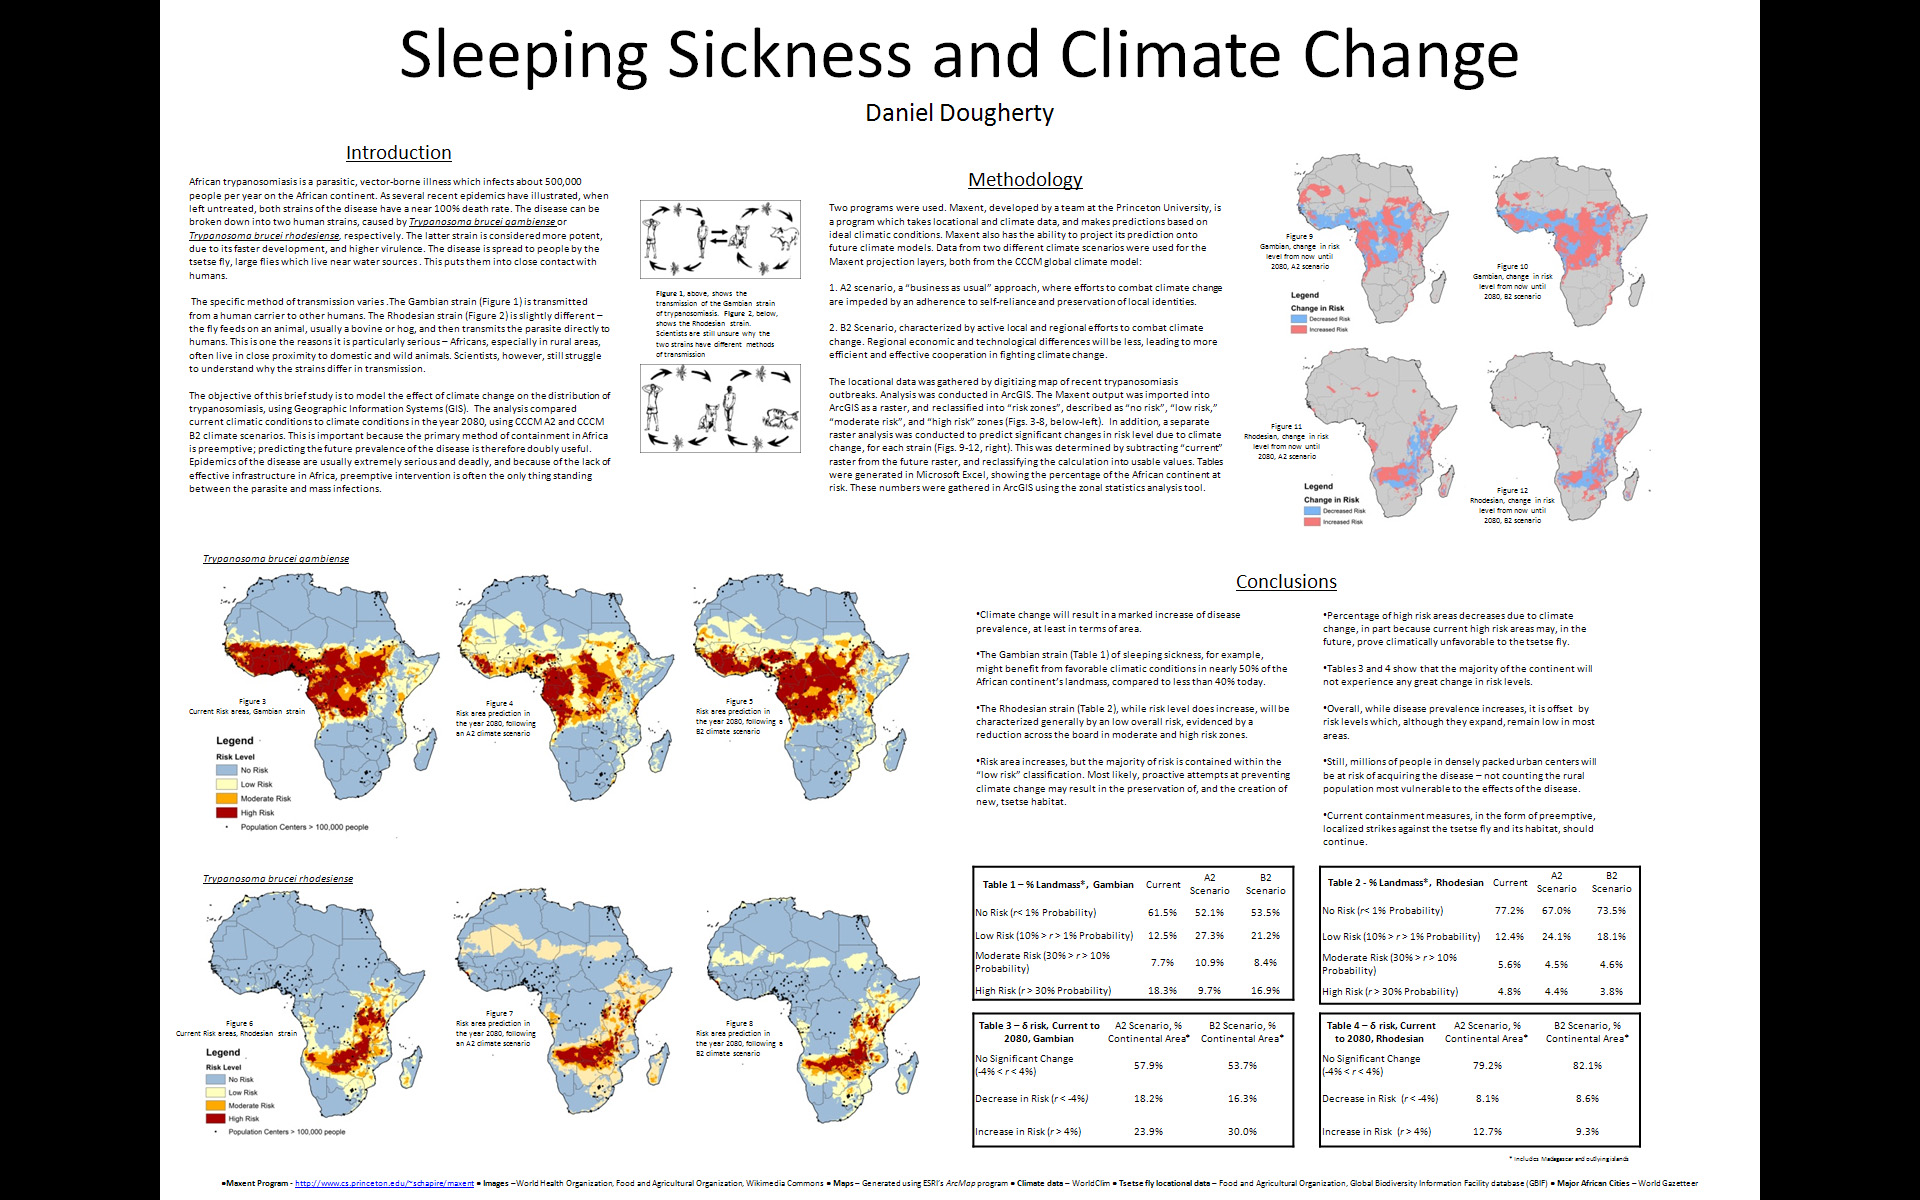 Bucknell student uses ArcGIS in research on sleeping sickness